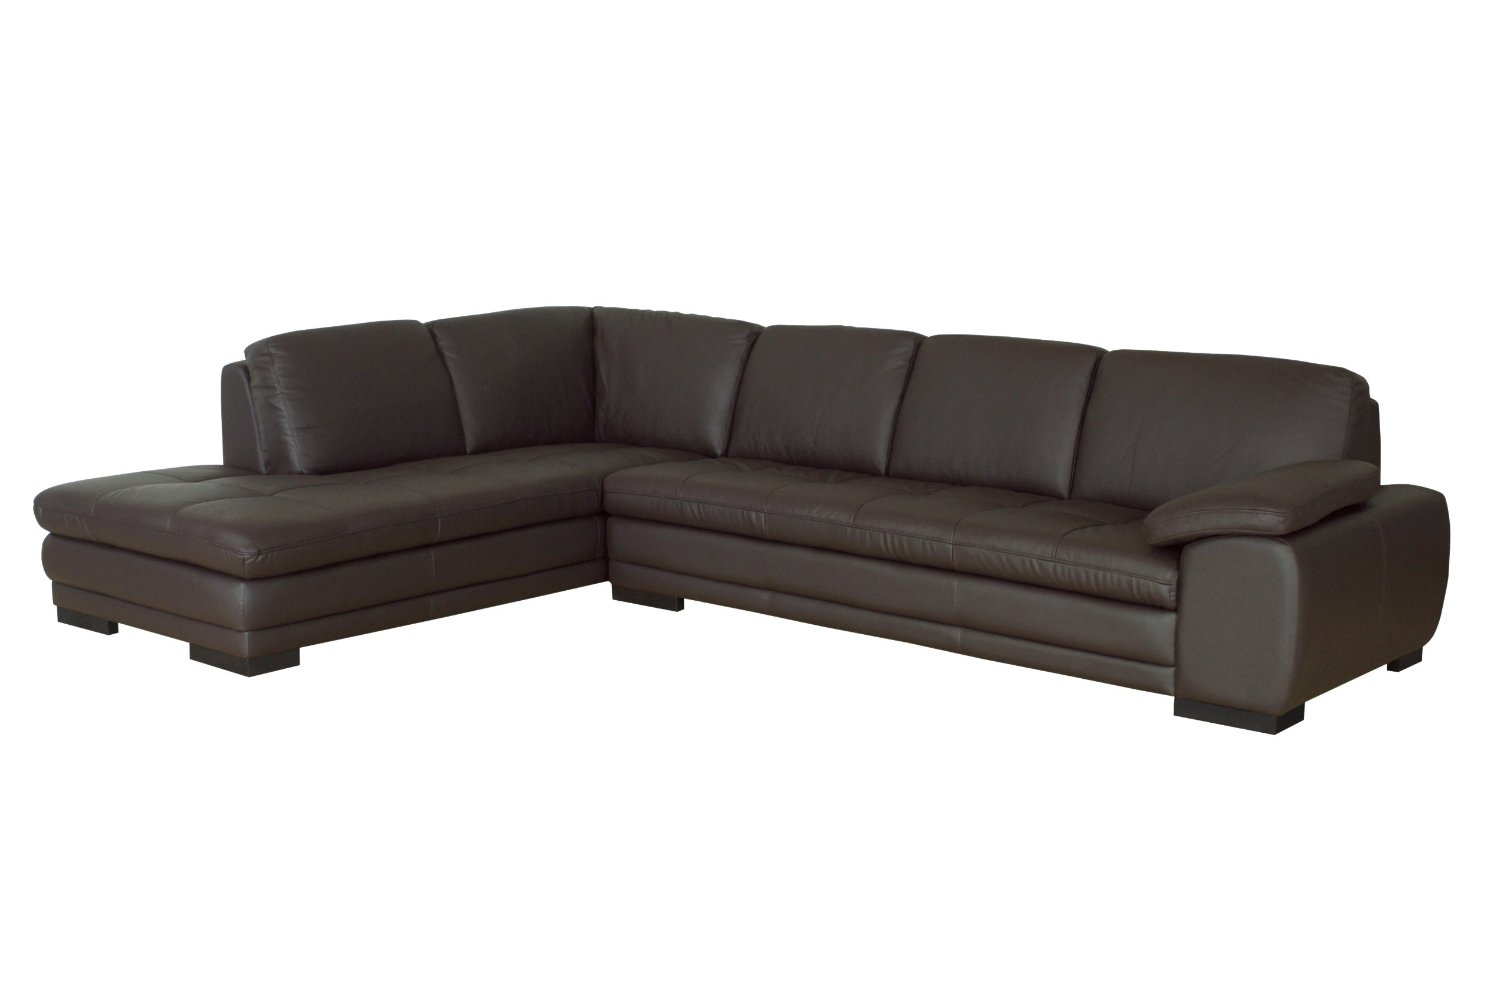 Leather sectional furniture guide leather for Furniture leather sofa